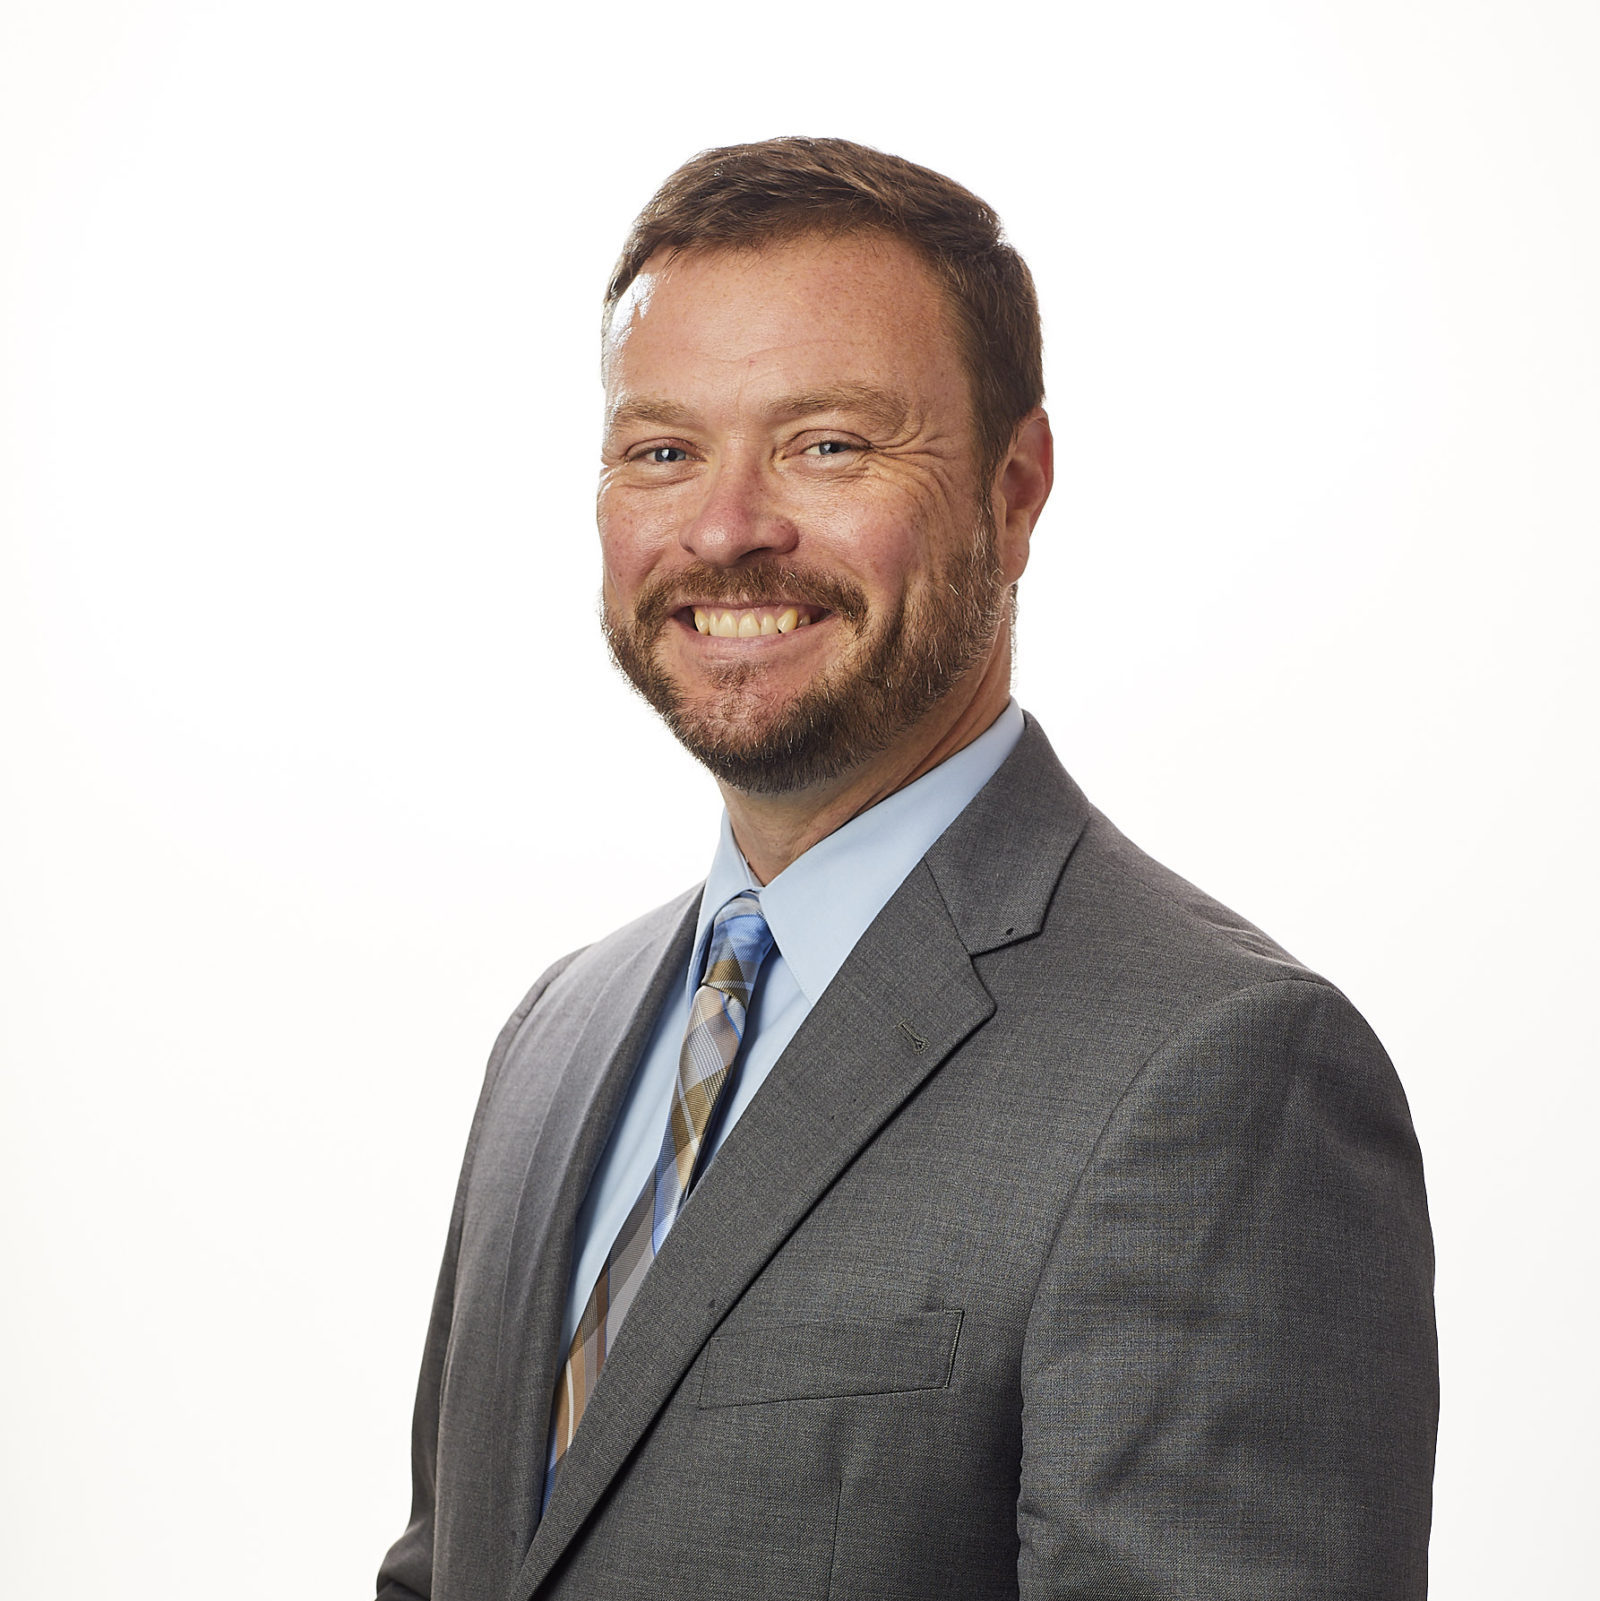 Mike Lang, Hourigan MEP Systems Manager